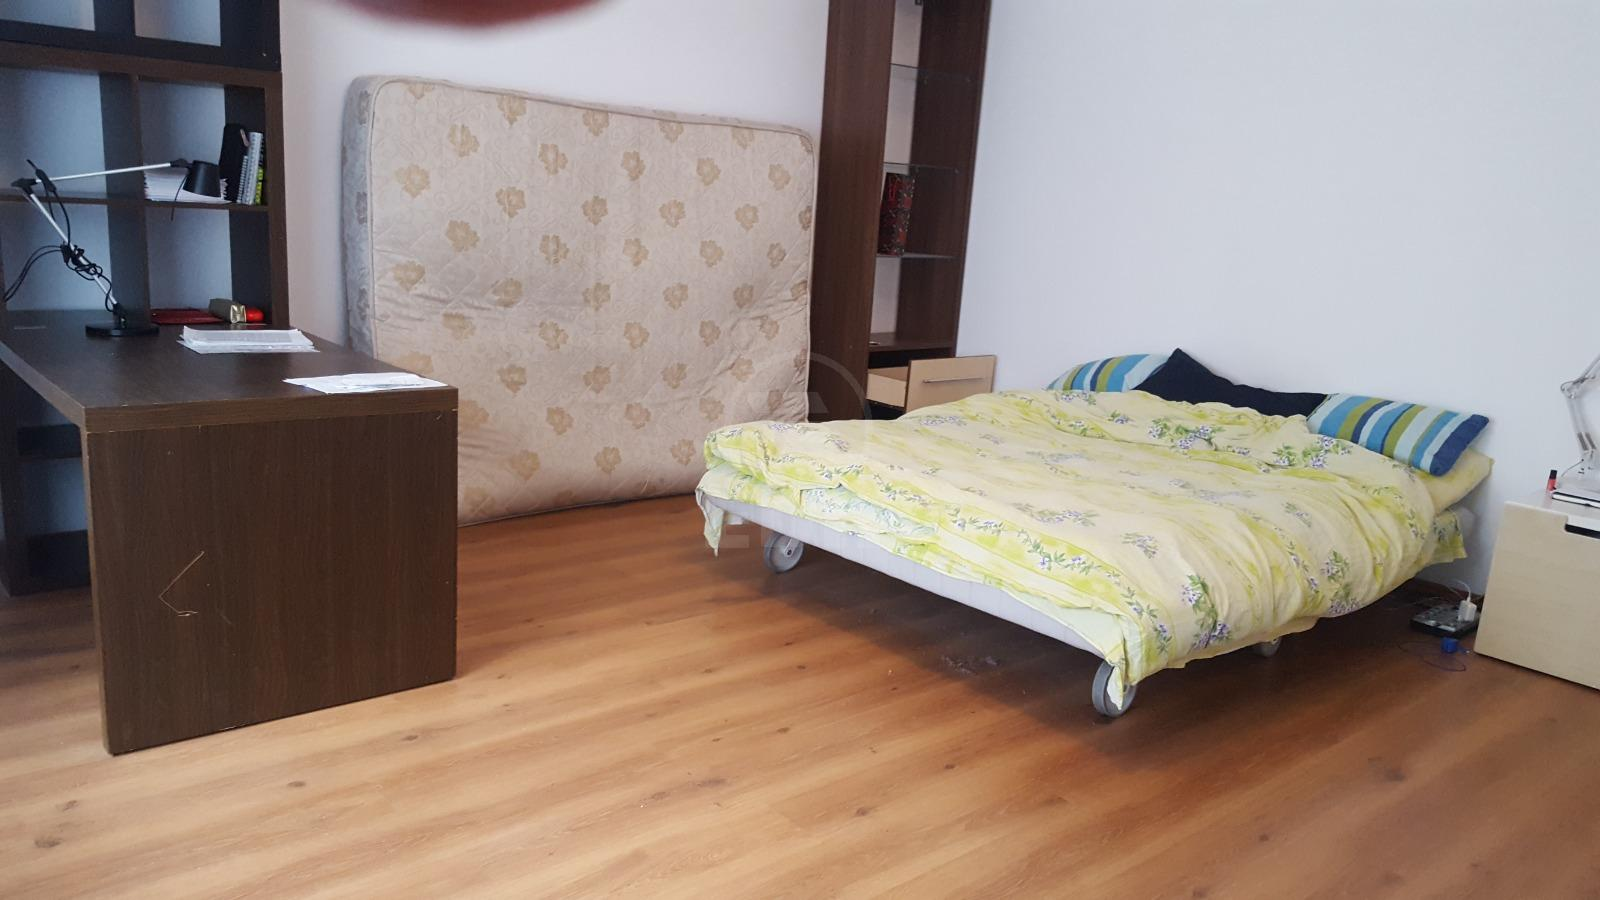 Apartment for rent 2 rooms, APCJ306976-2